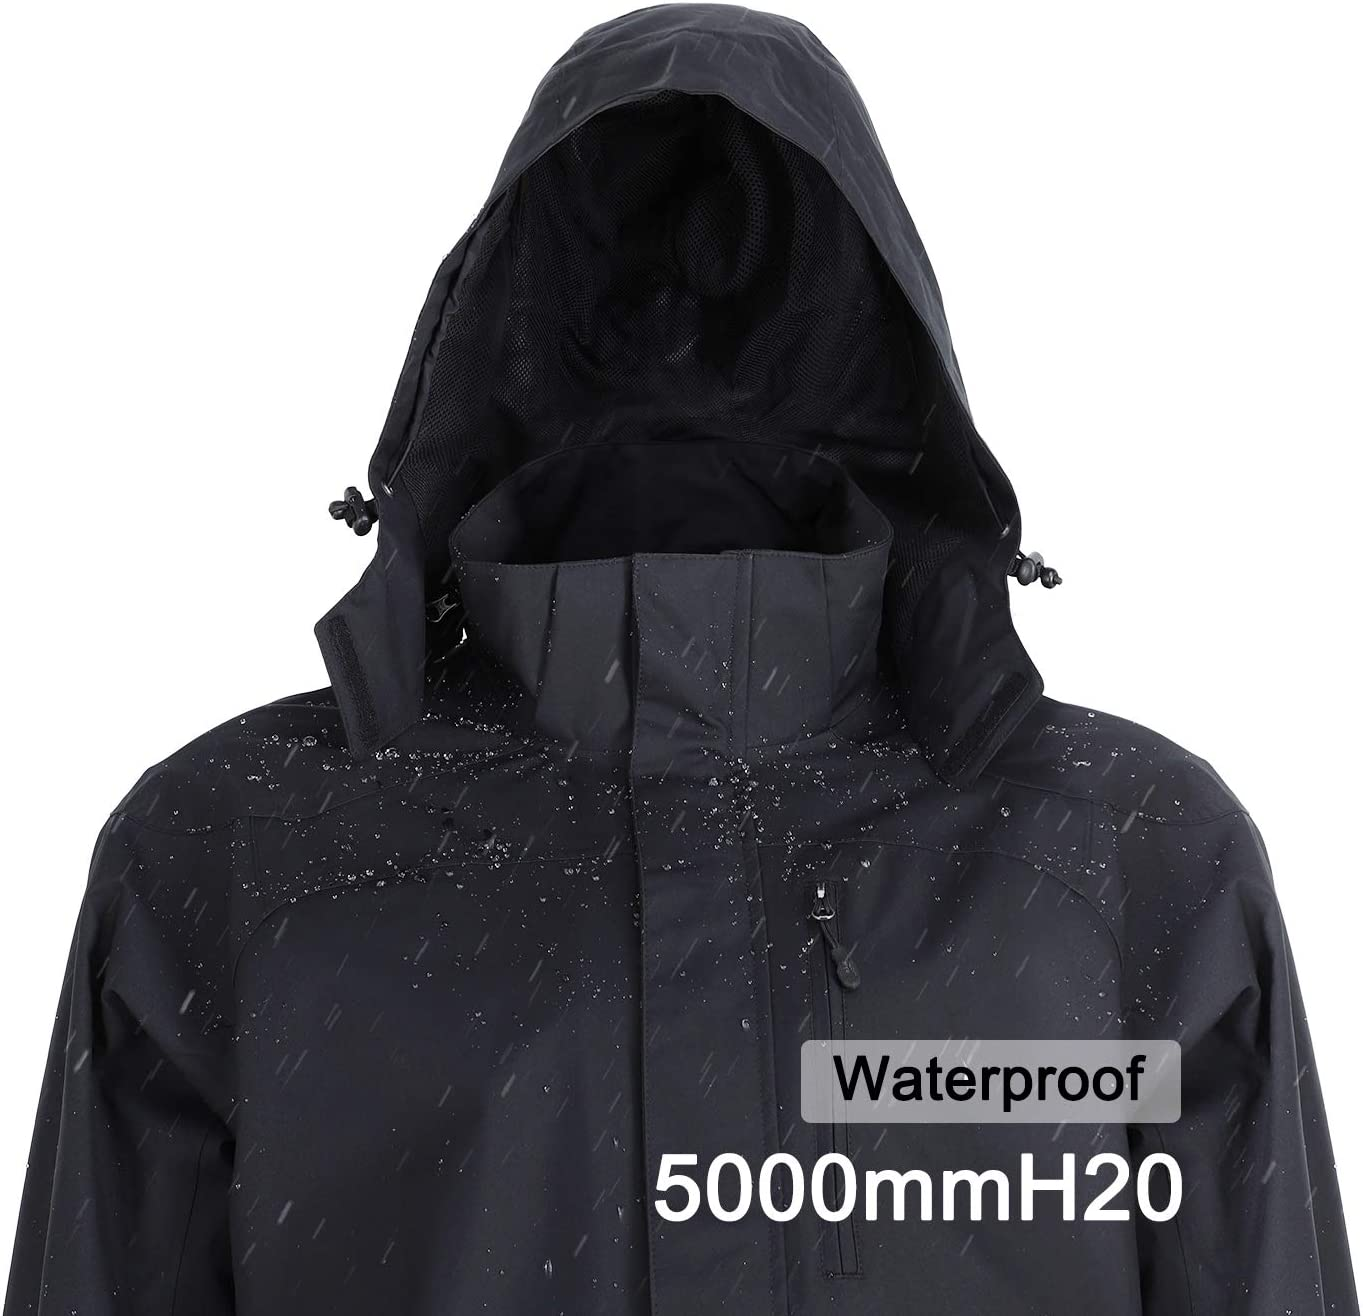 MIER Men's Lightweight Waterproof Ranking integrated 1st place In a popularity Fishing Softshell Jacke Hiking